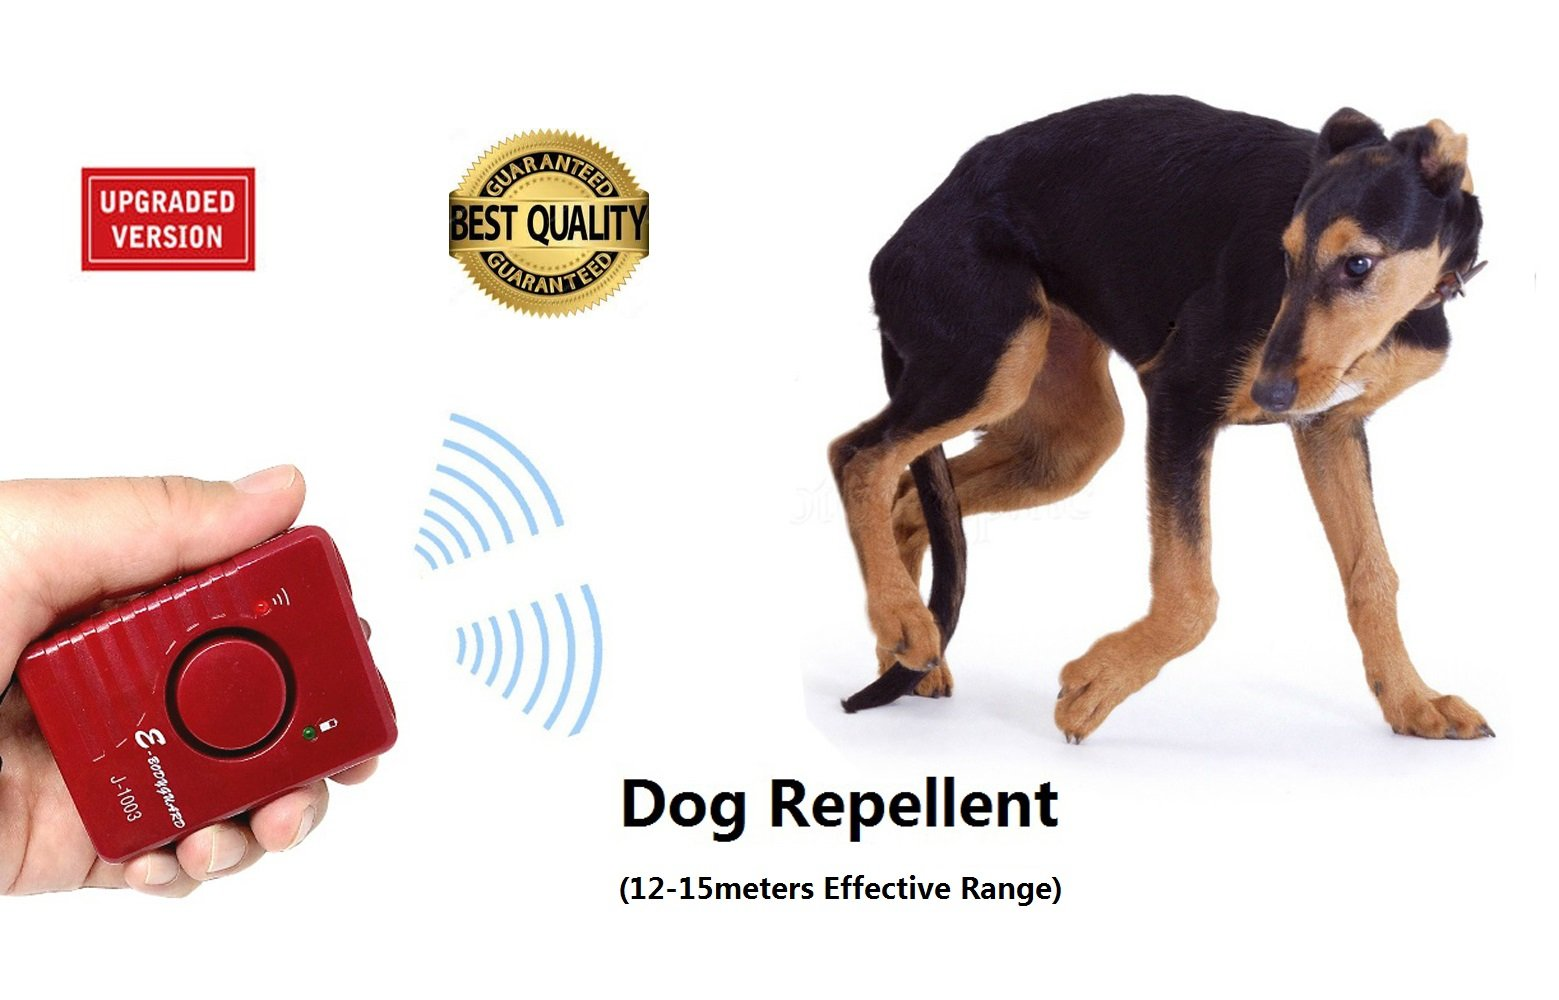 Ultrasonic Dog Repellent Sonic Deterrent Ultrasound Pet Chaser Animal Repeller Training trainer Bark Stop Control Device Rechargeable(Red)